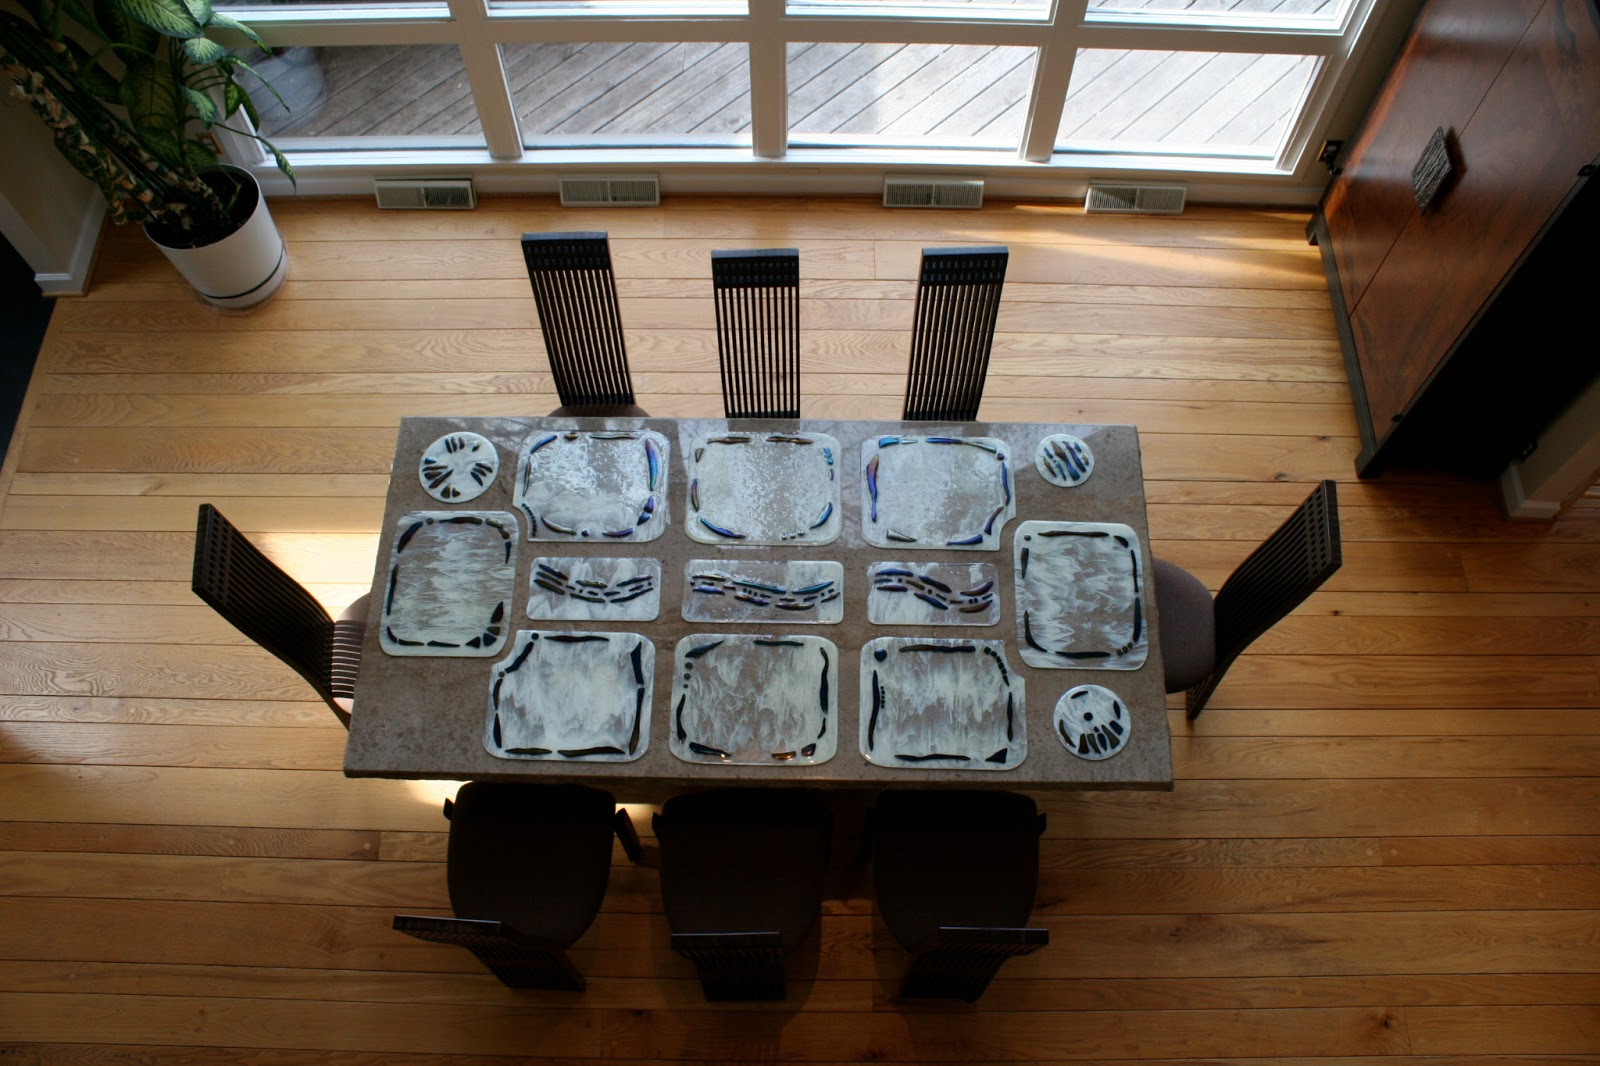 Omega glass fused glass art that 39 s ridiculously cool for Glass table placemats